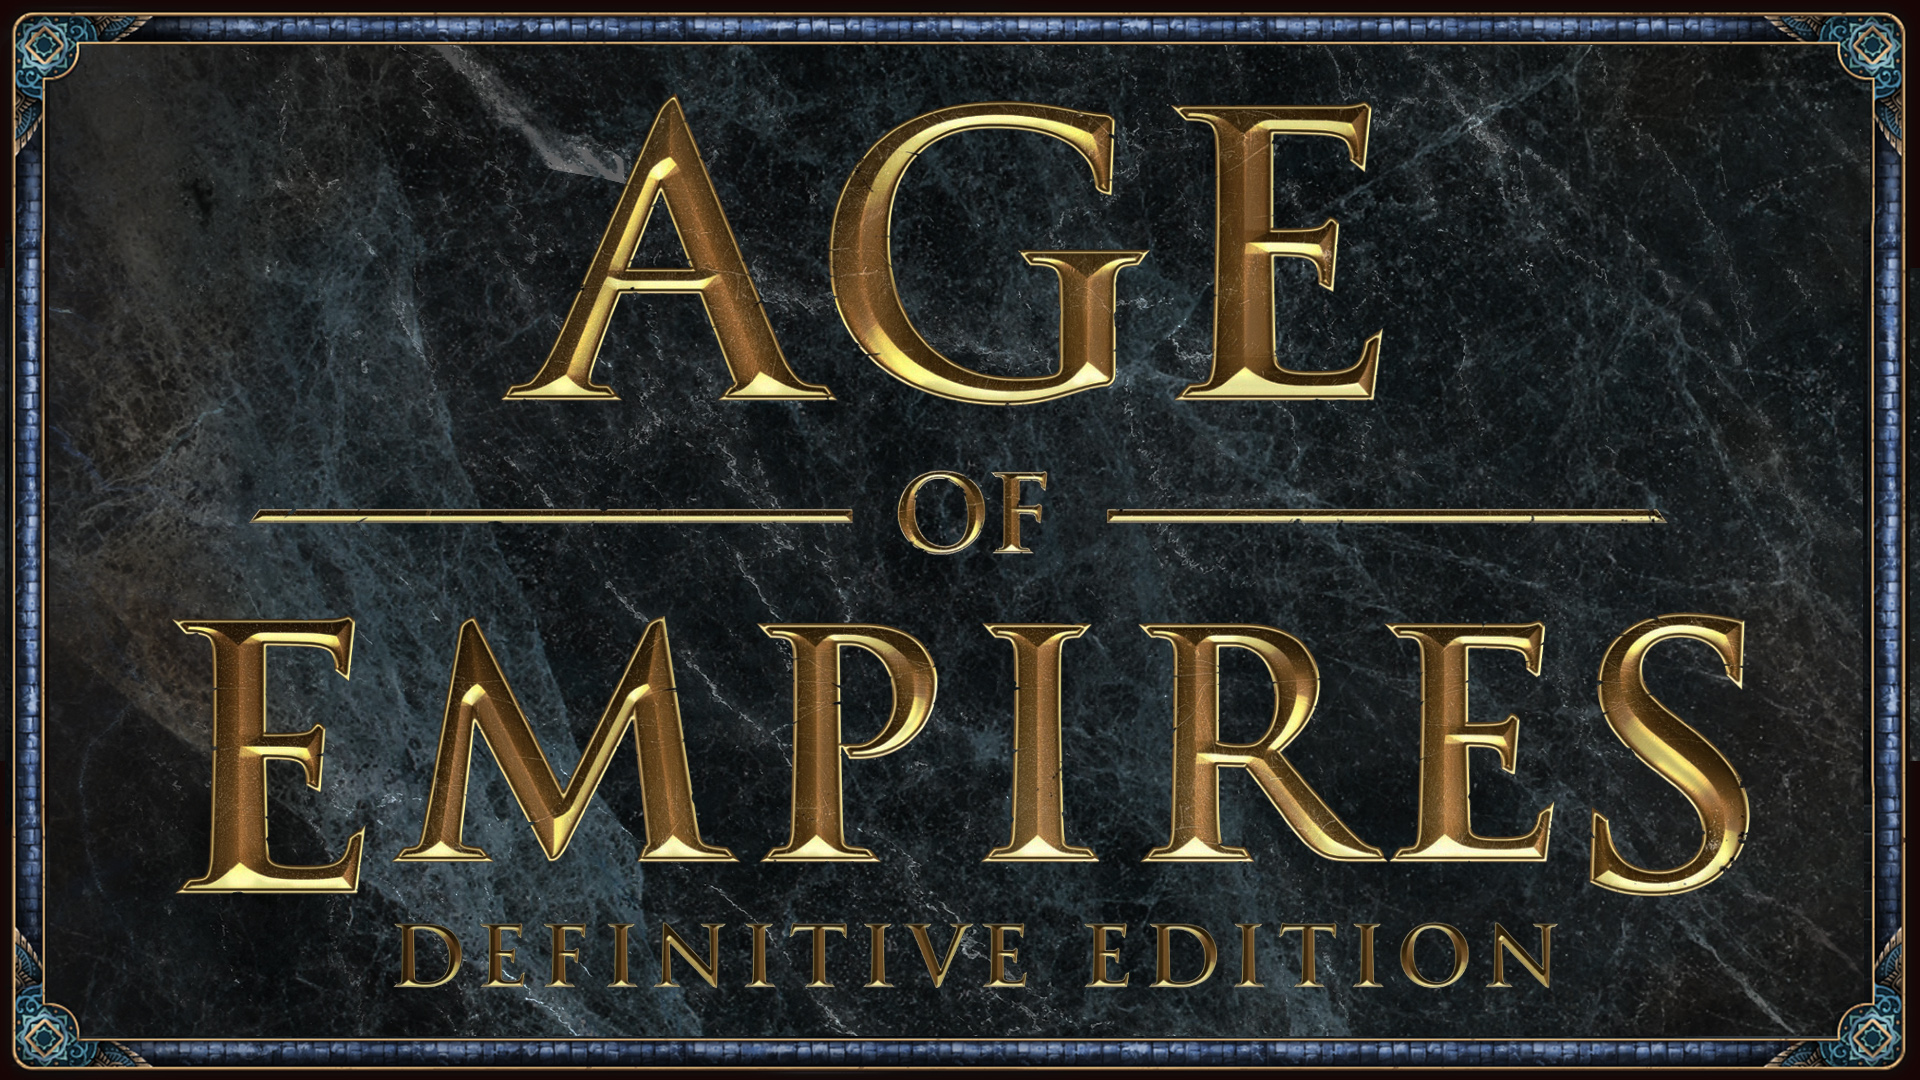 Age of Empires: Definitive Edition Wallpaper Download Original (1920x1080)